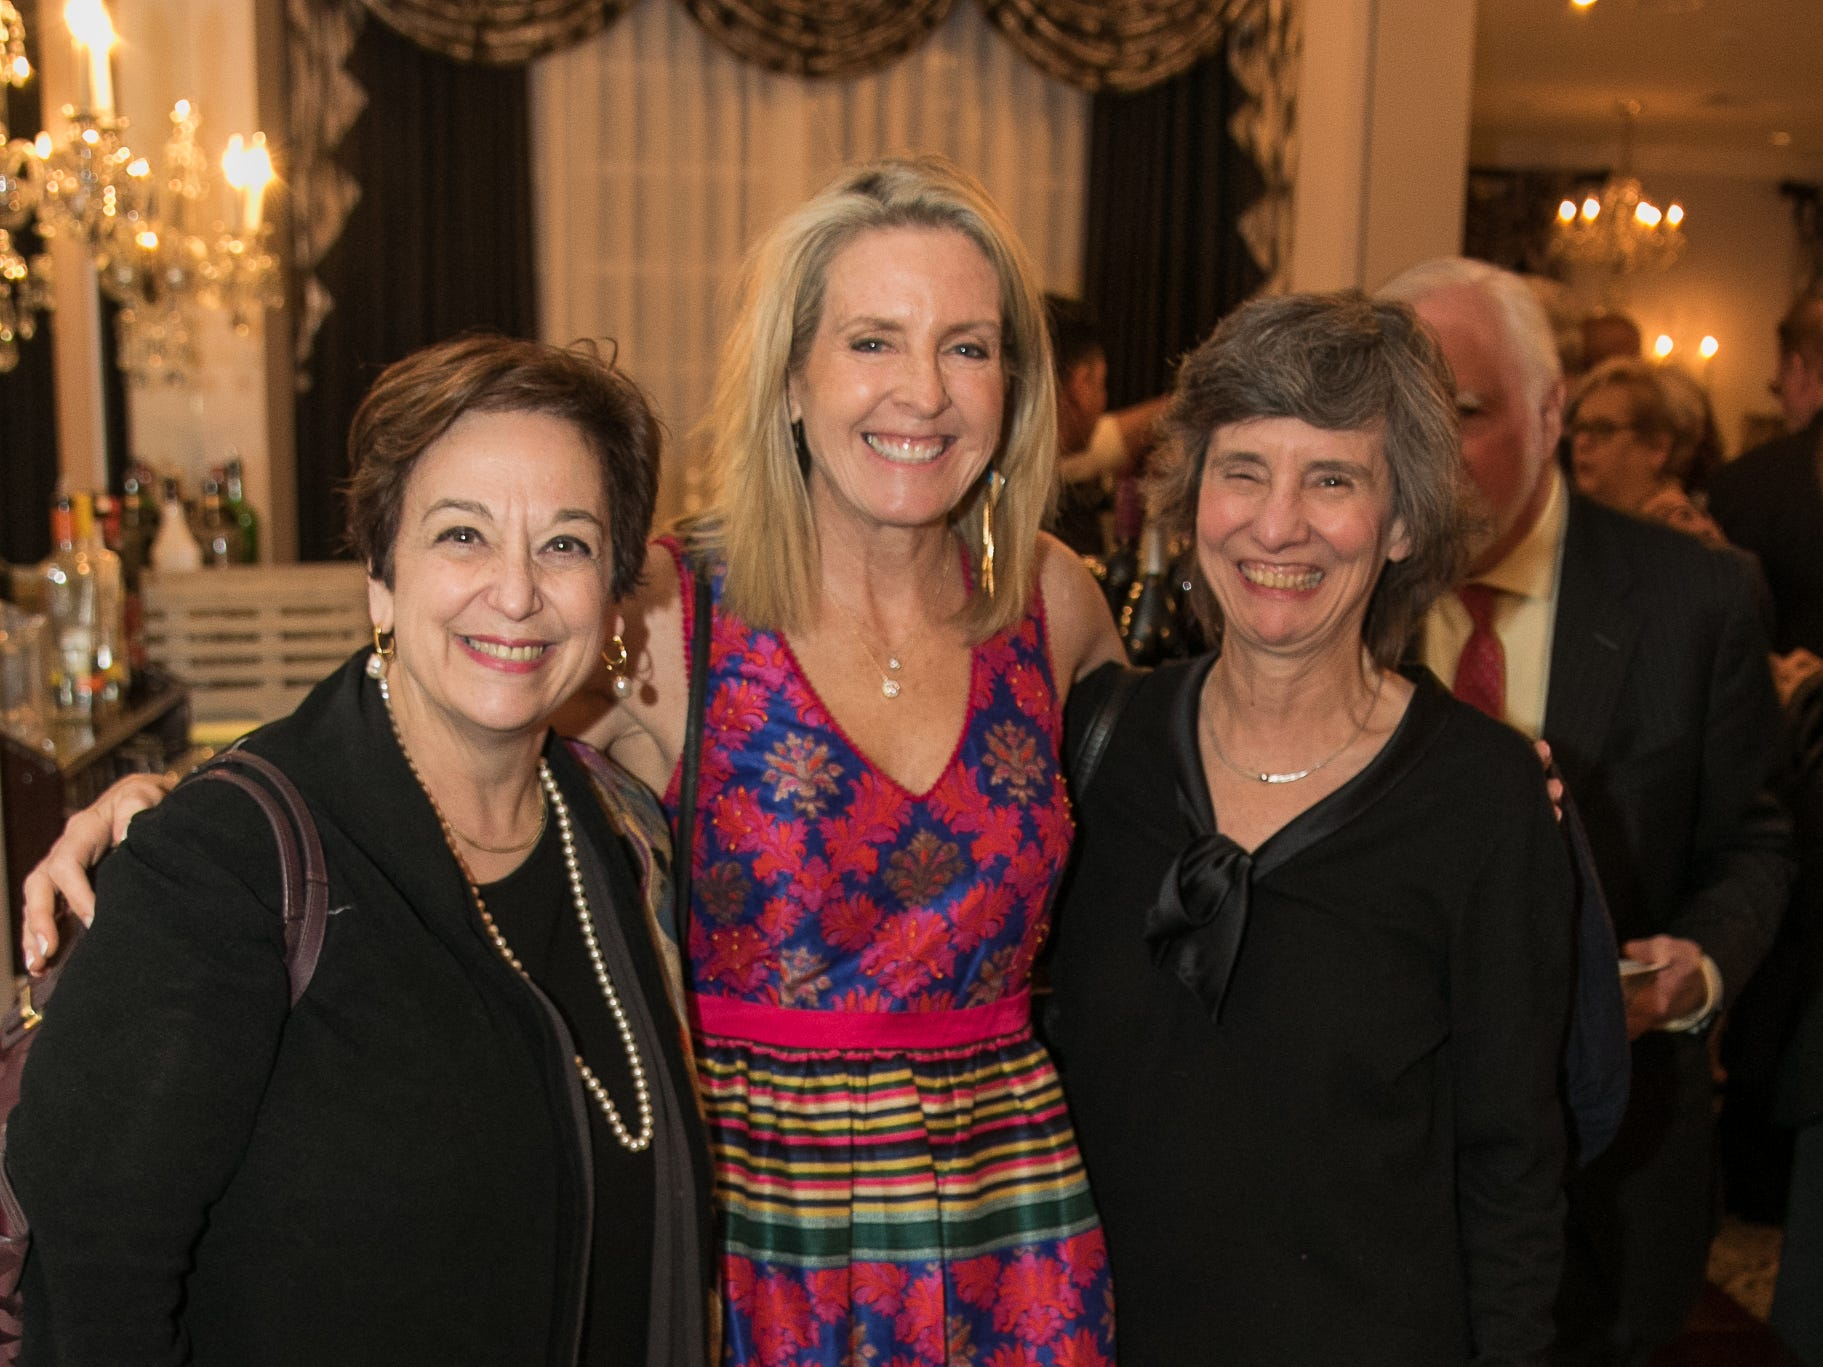 Jan Philips, Gwenn Hauck, Margie Downs. The Bergen Volunteer Center celebrated its 10th anniversary of the Bergen LEADS program at The Hearts of Gold Dinner and Auction at the Stony Hill Inn in Hackensack. 11/08/2018